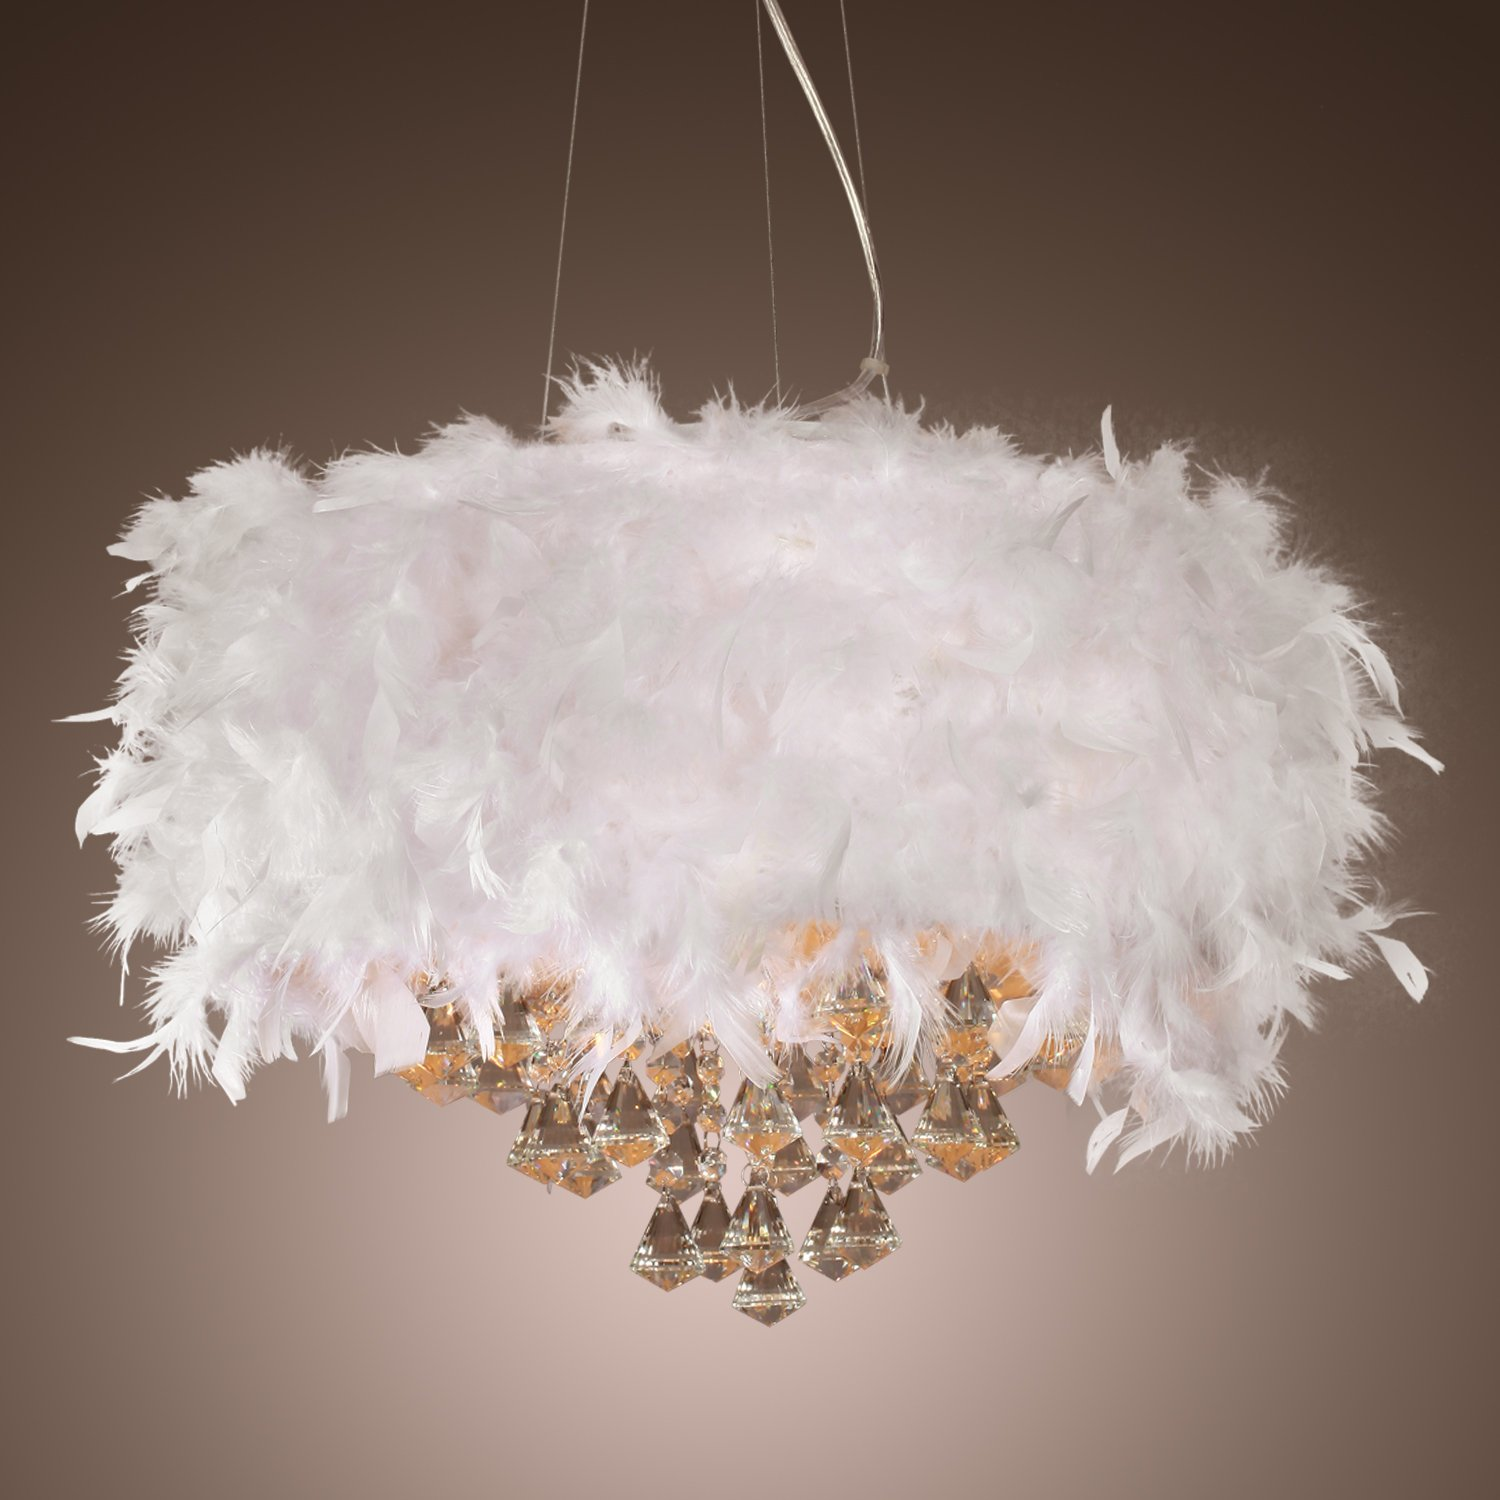 LightInTheBox Contemporary Luxuriant White Feather Chandelier with